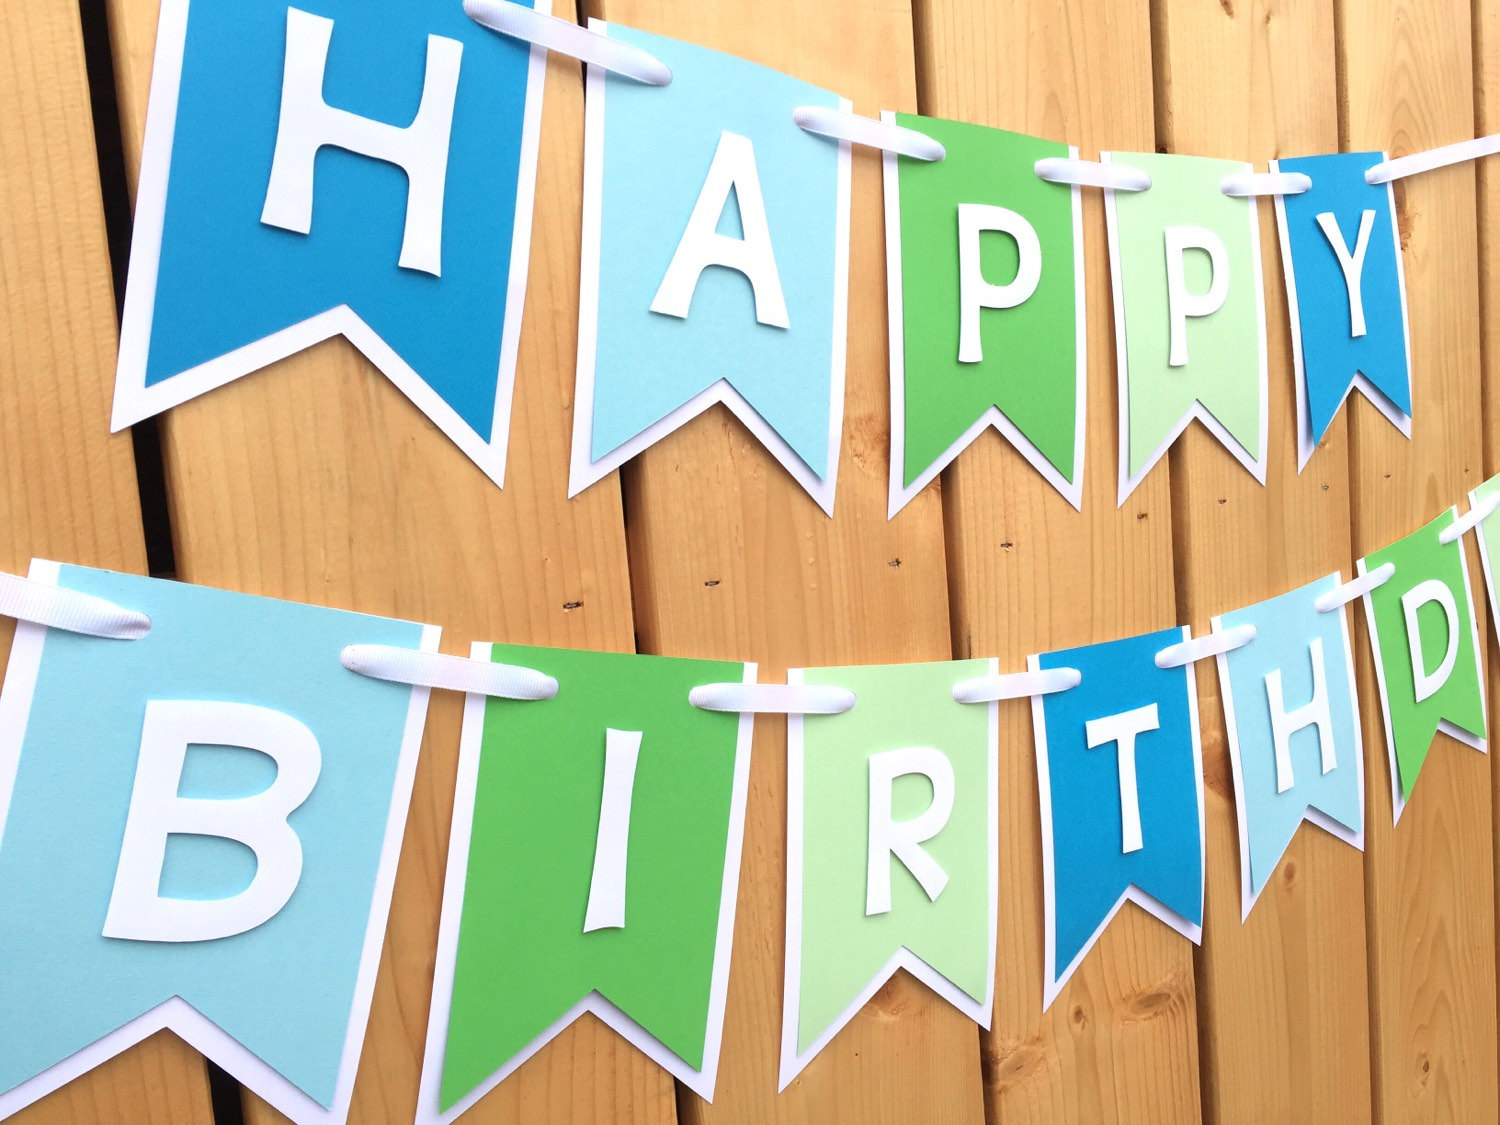 customized birthday banners with photo ; bbb4588ecb8f1a41066e11a22c6cff4a